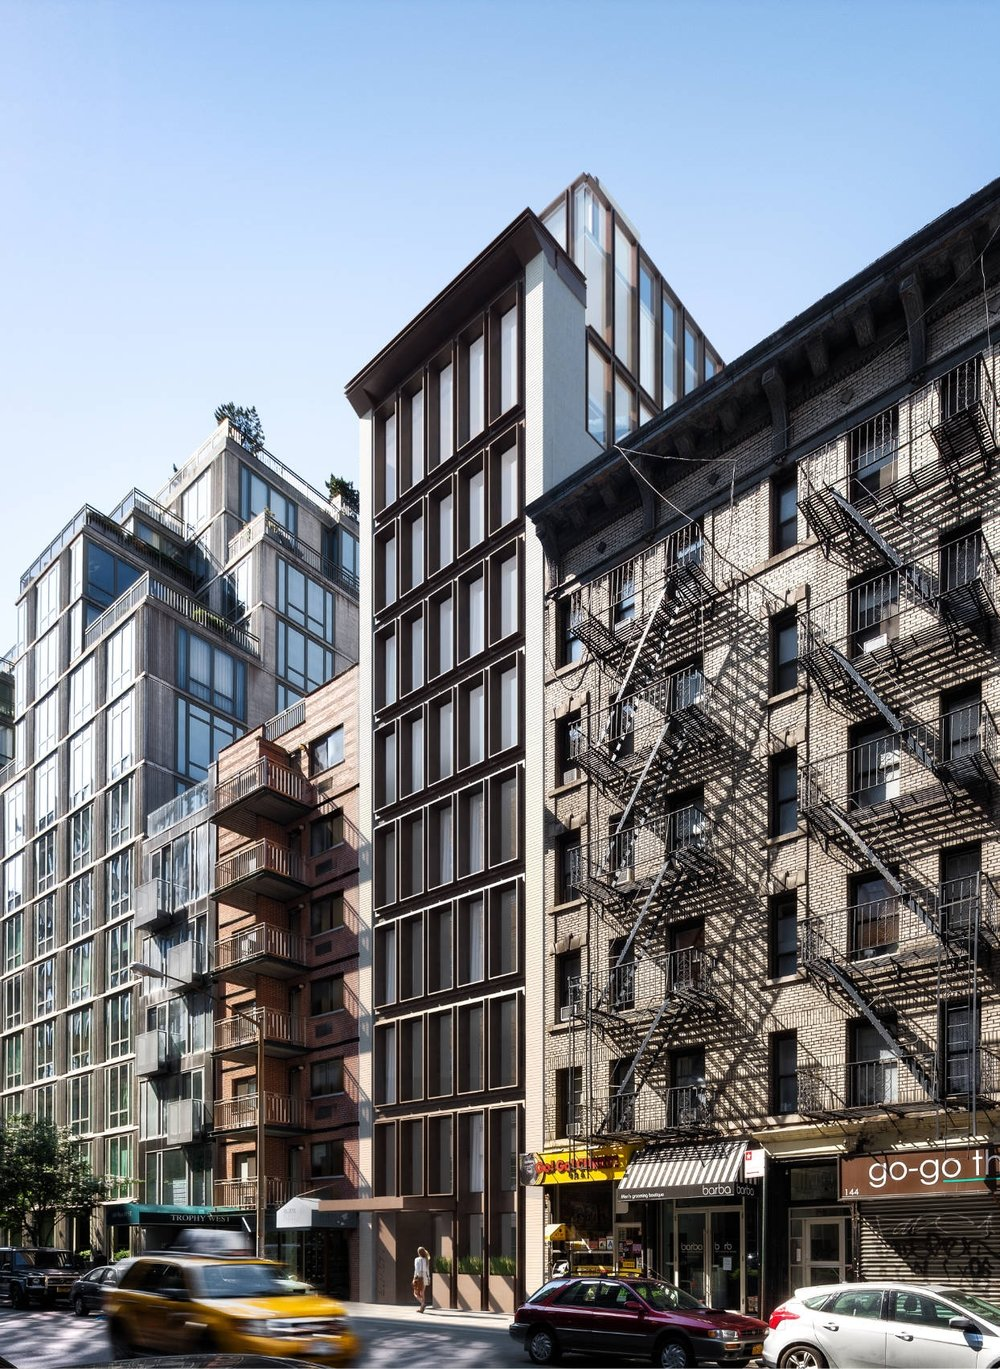 extraordinary. community. Extraordinary.NYC. Chelsea. building. Think architecture & design